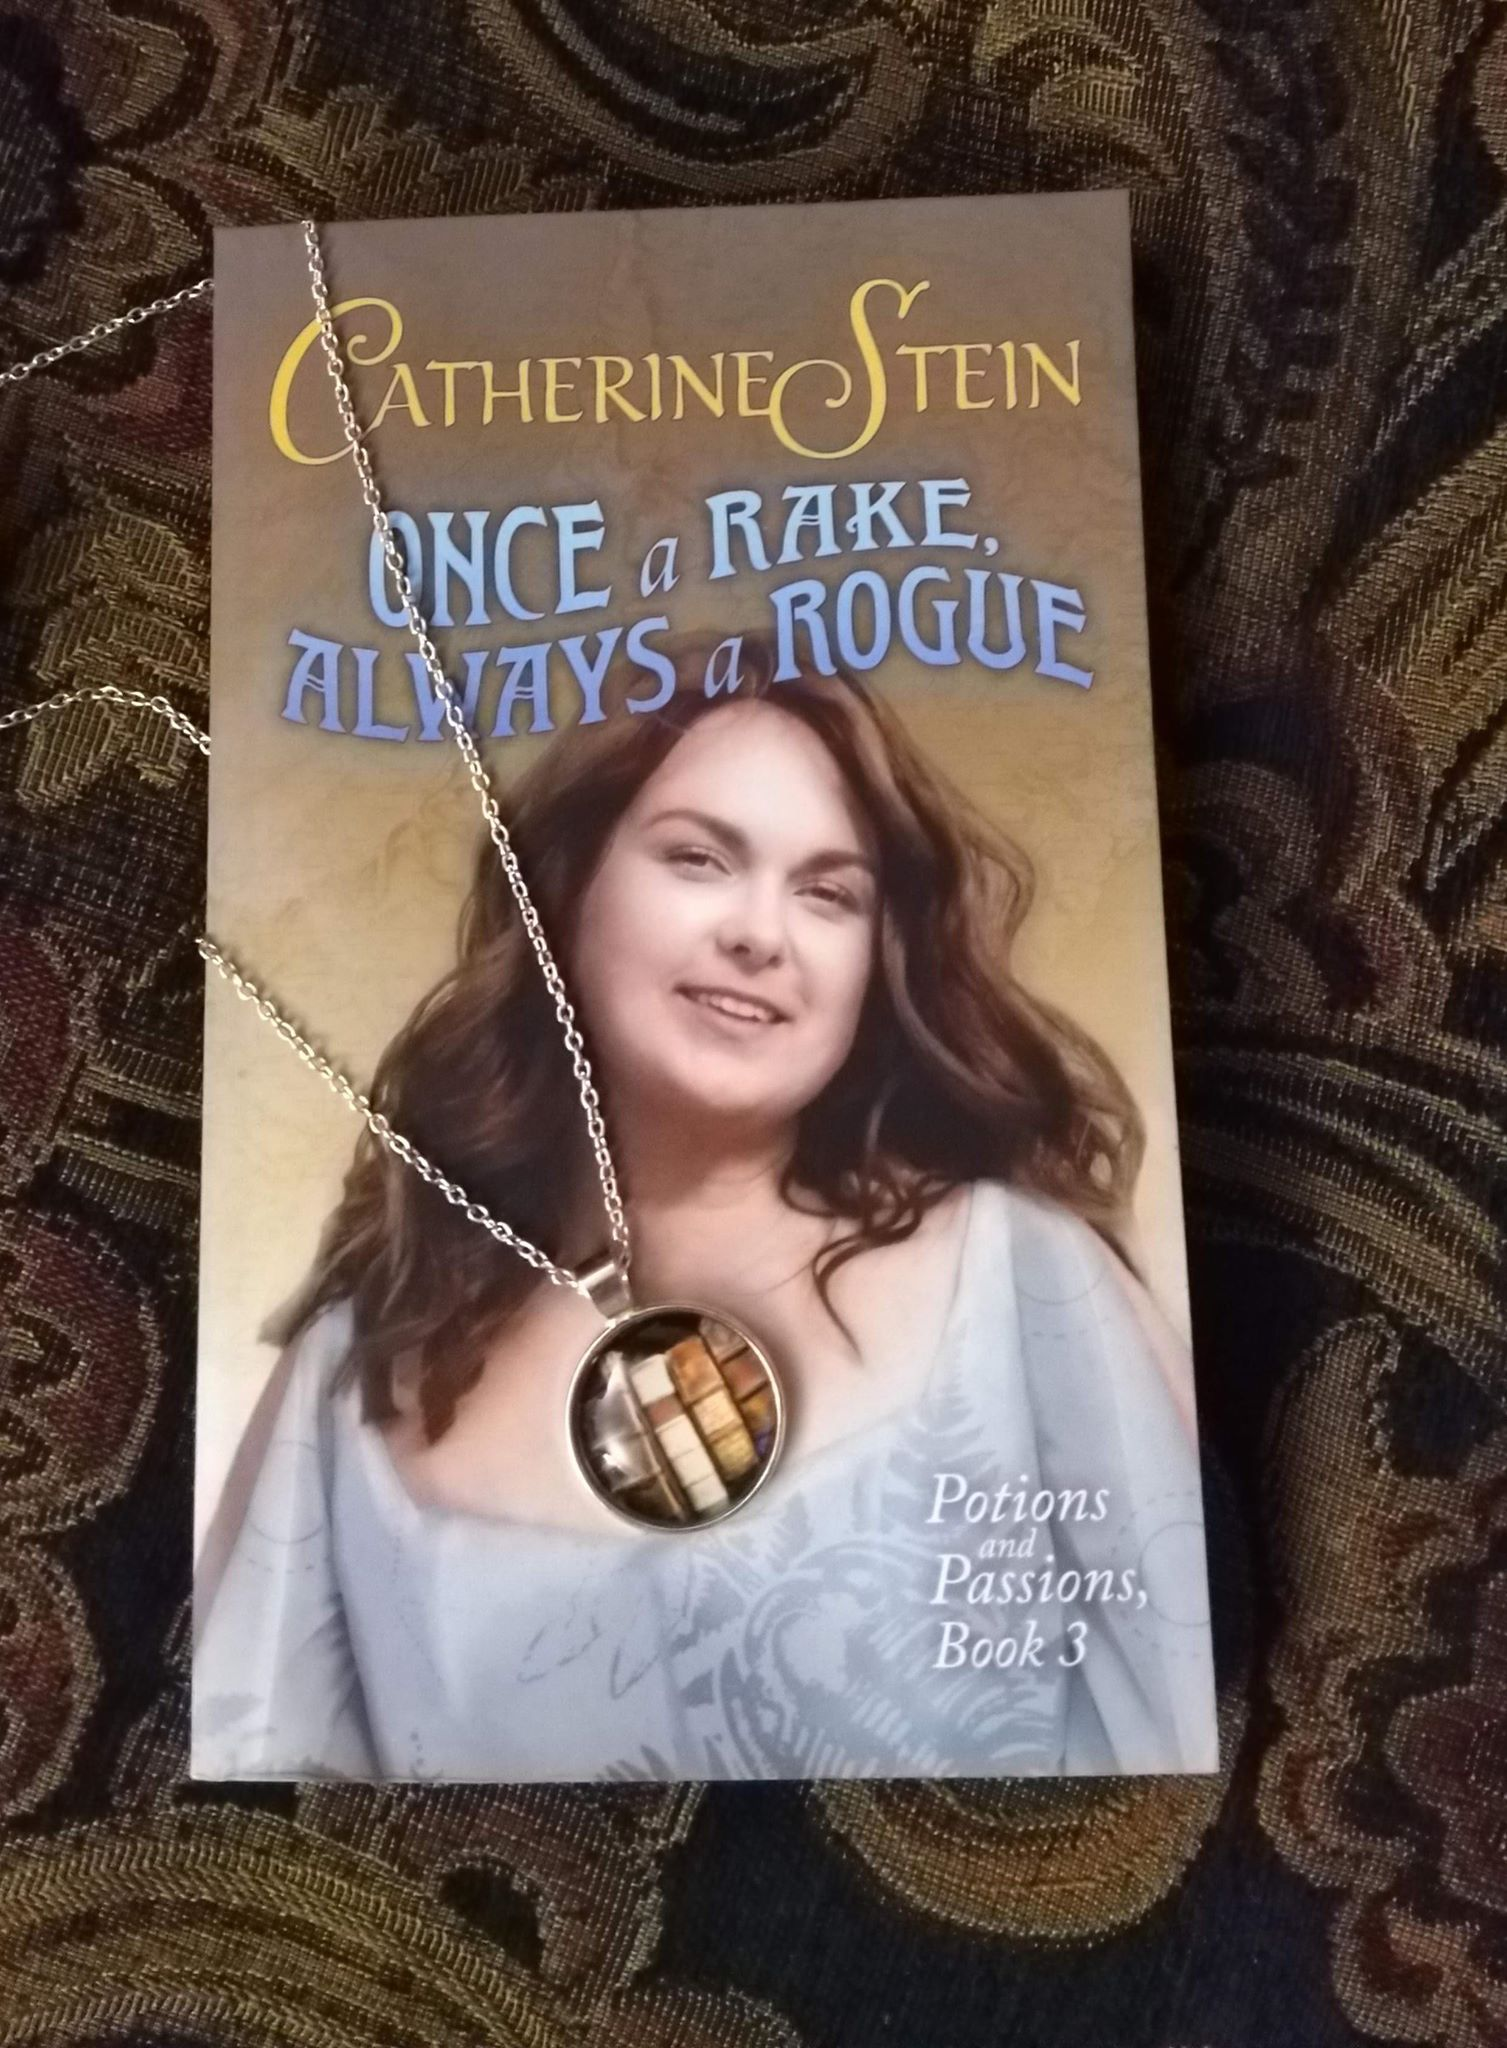 paperback copy and necklace with book pendant